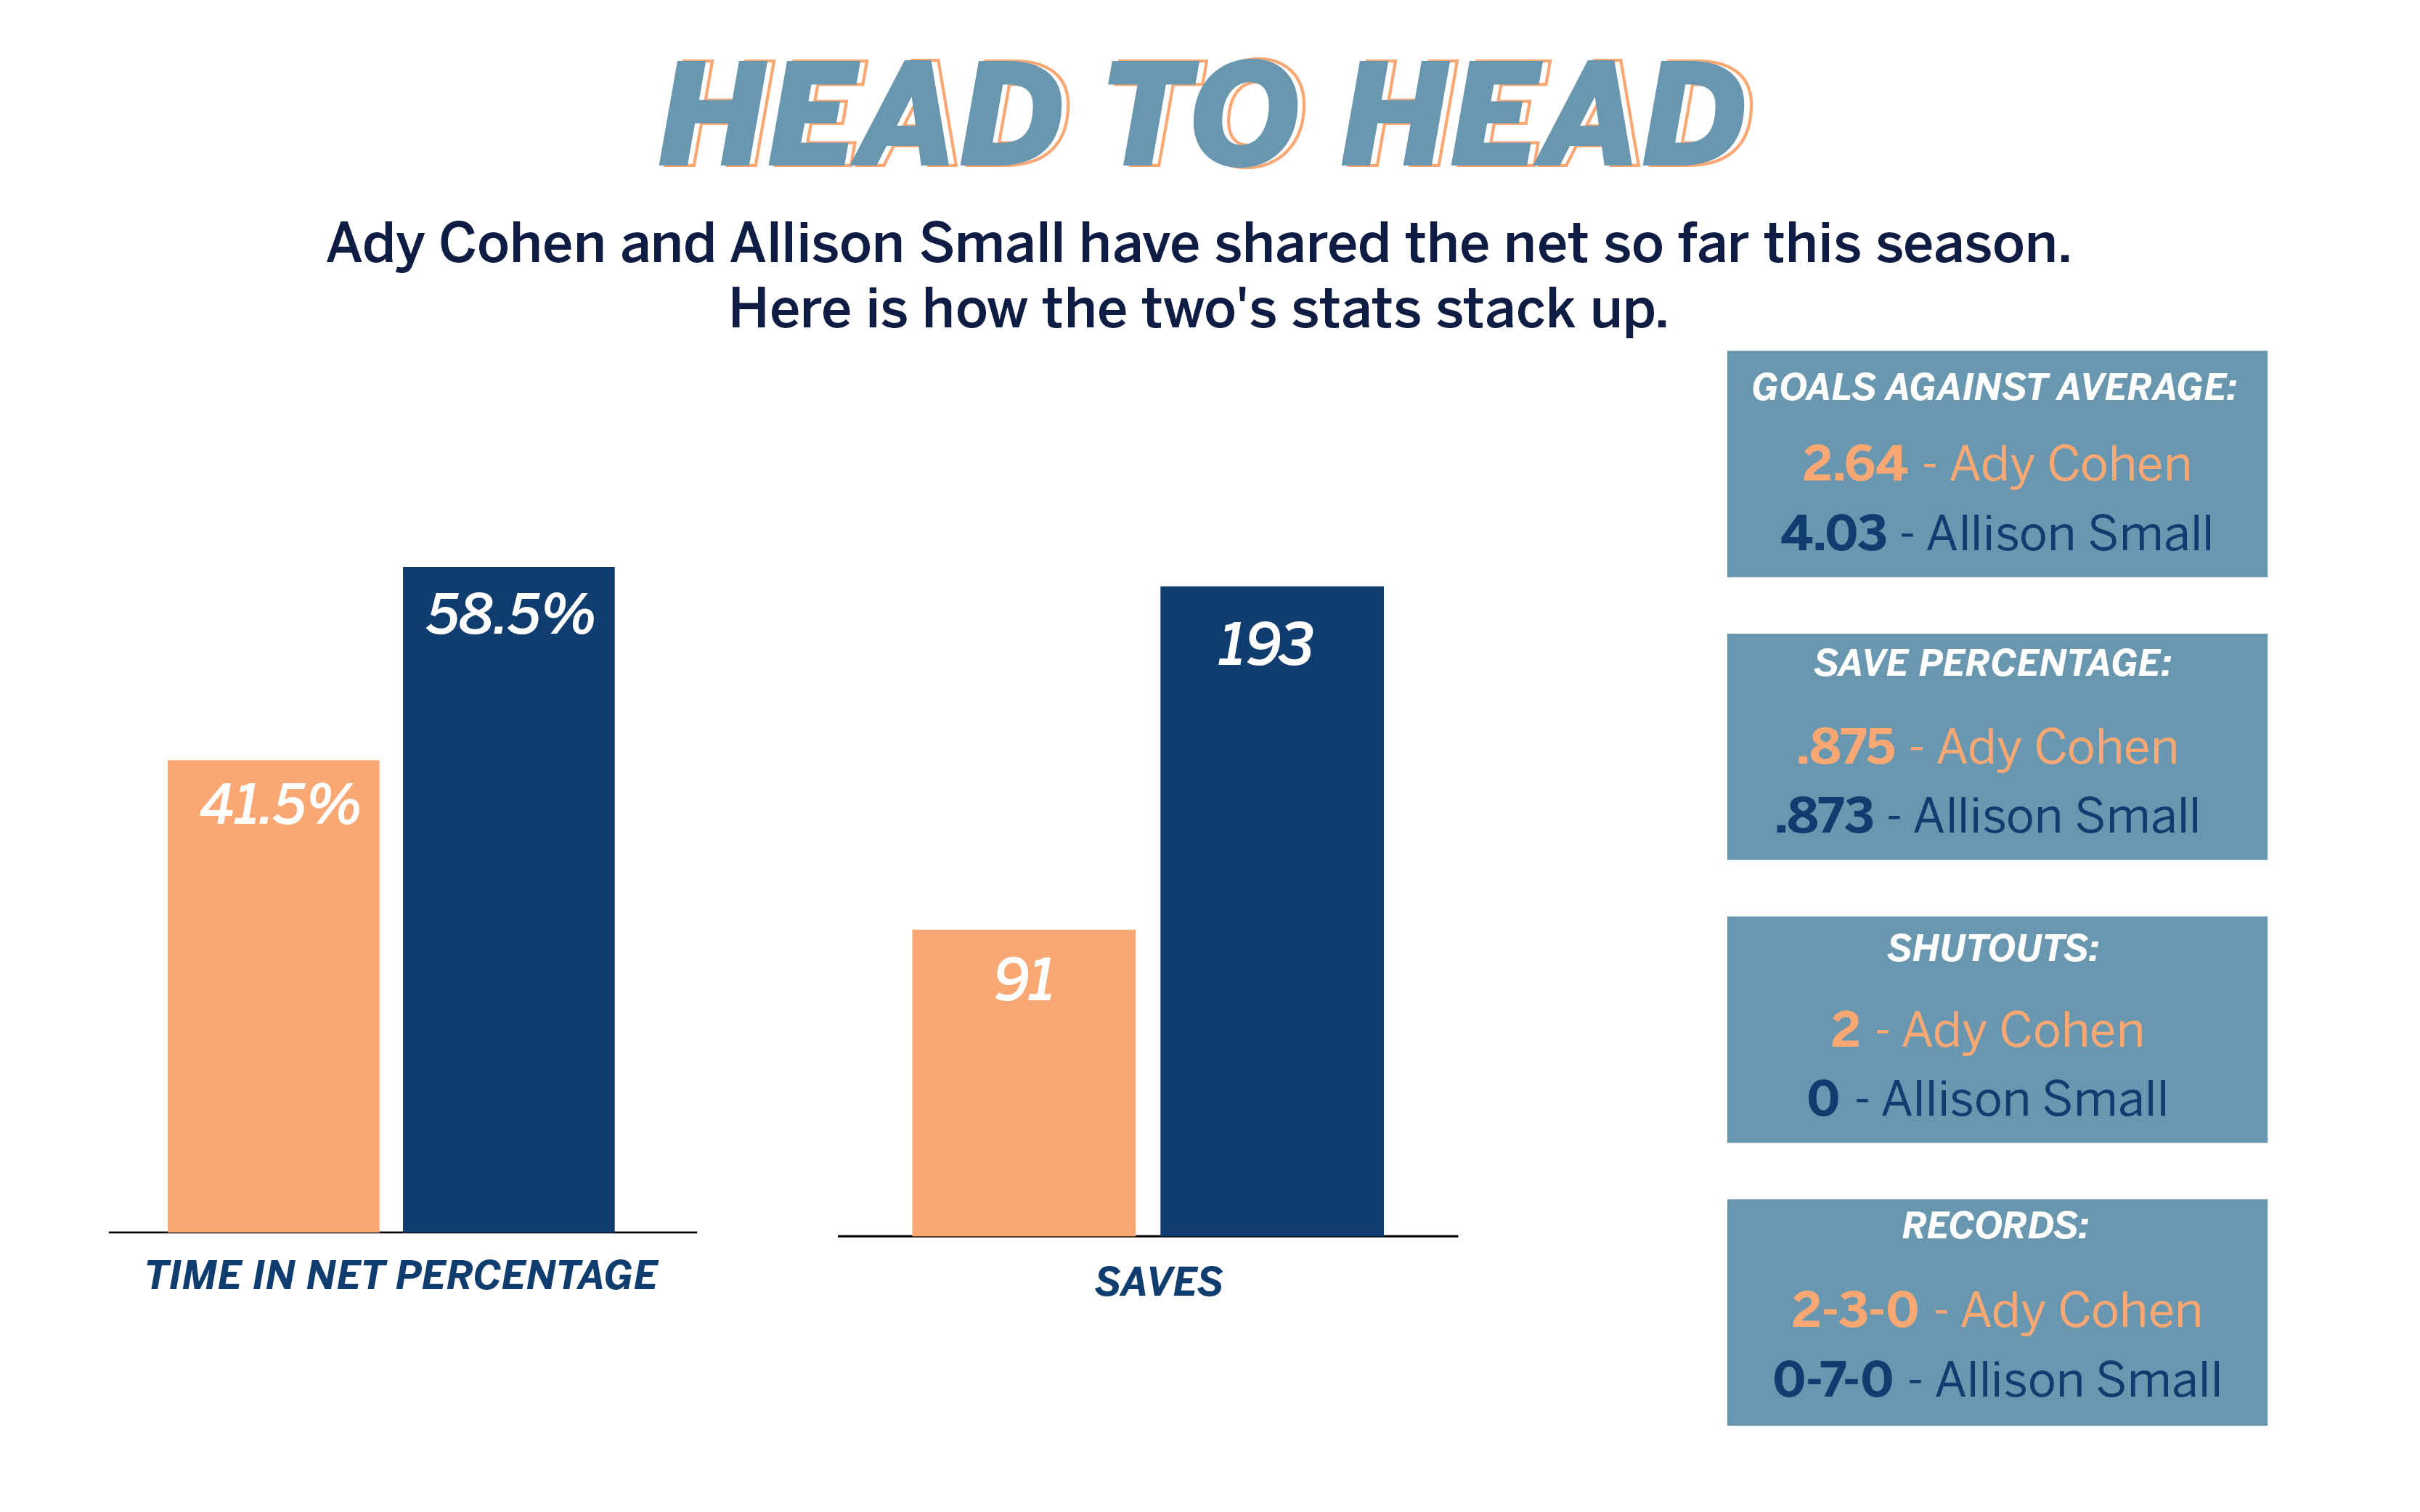 Head to head: Ady Cohen and Allison Small have shared the net so far this season. Here's how the two's stats stack up.